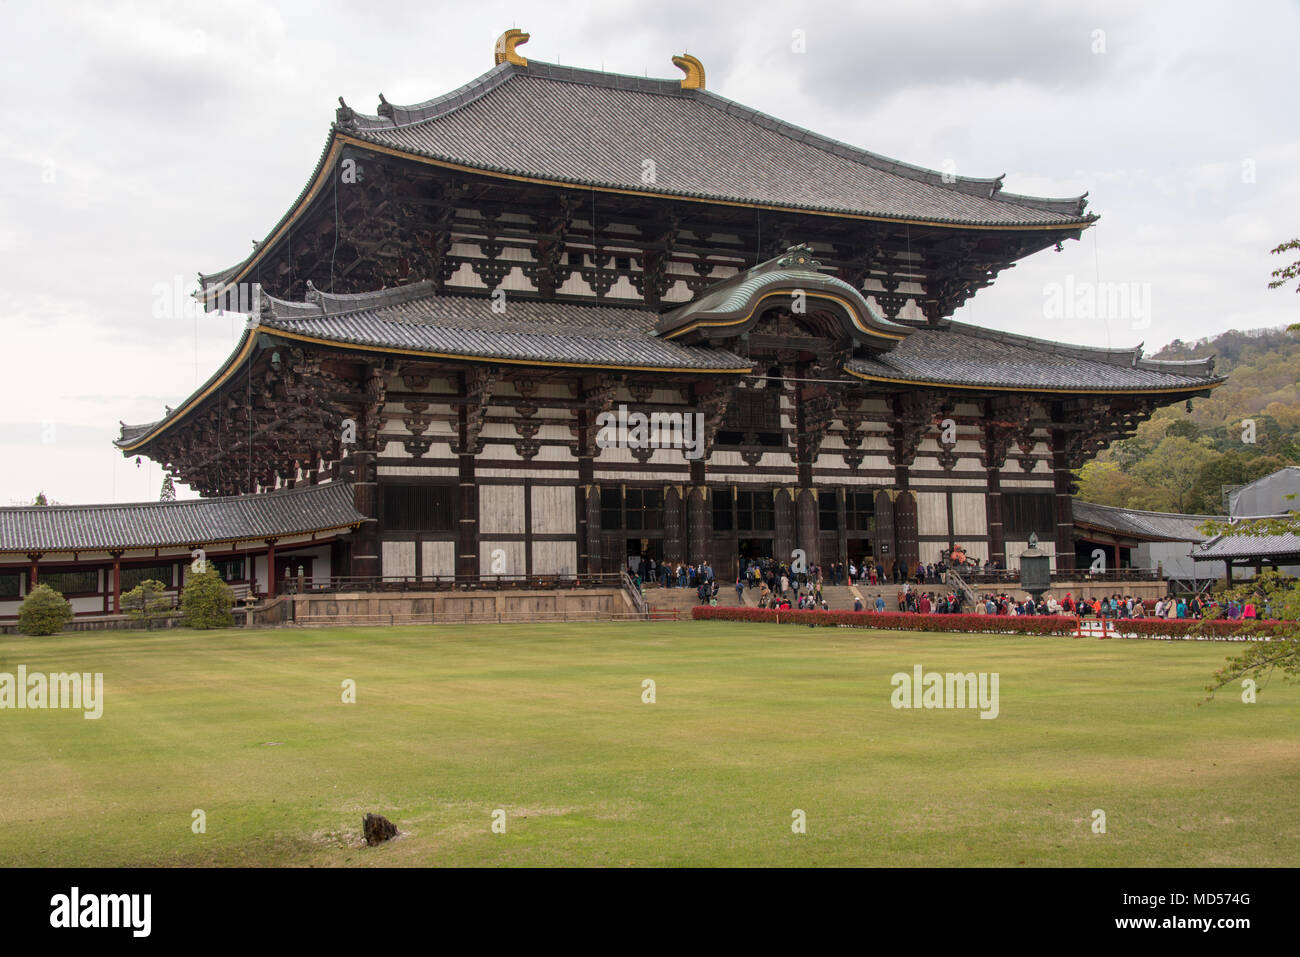 Shrine, Nara World Heritage Site, near Kyoto, Japan - Stock Image